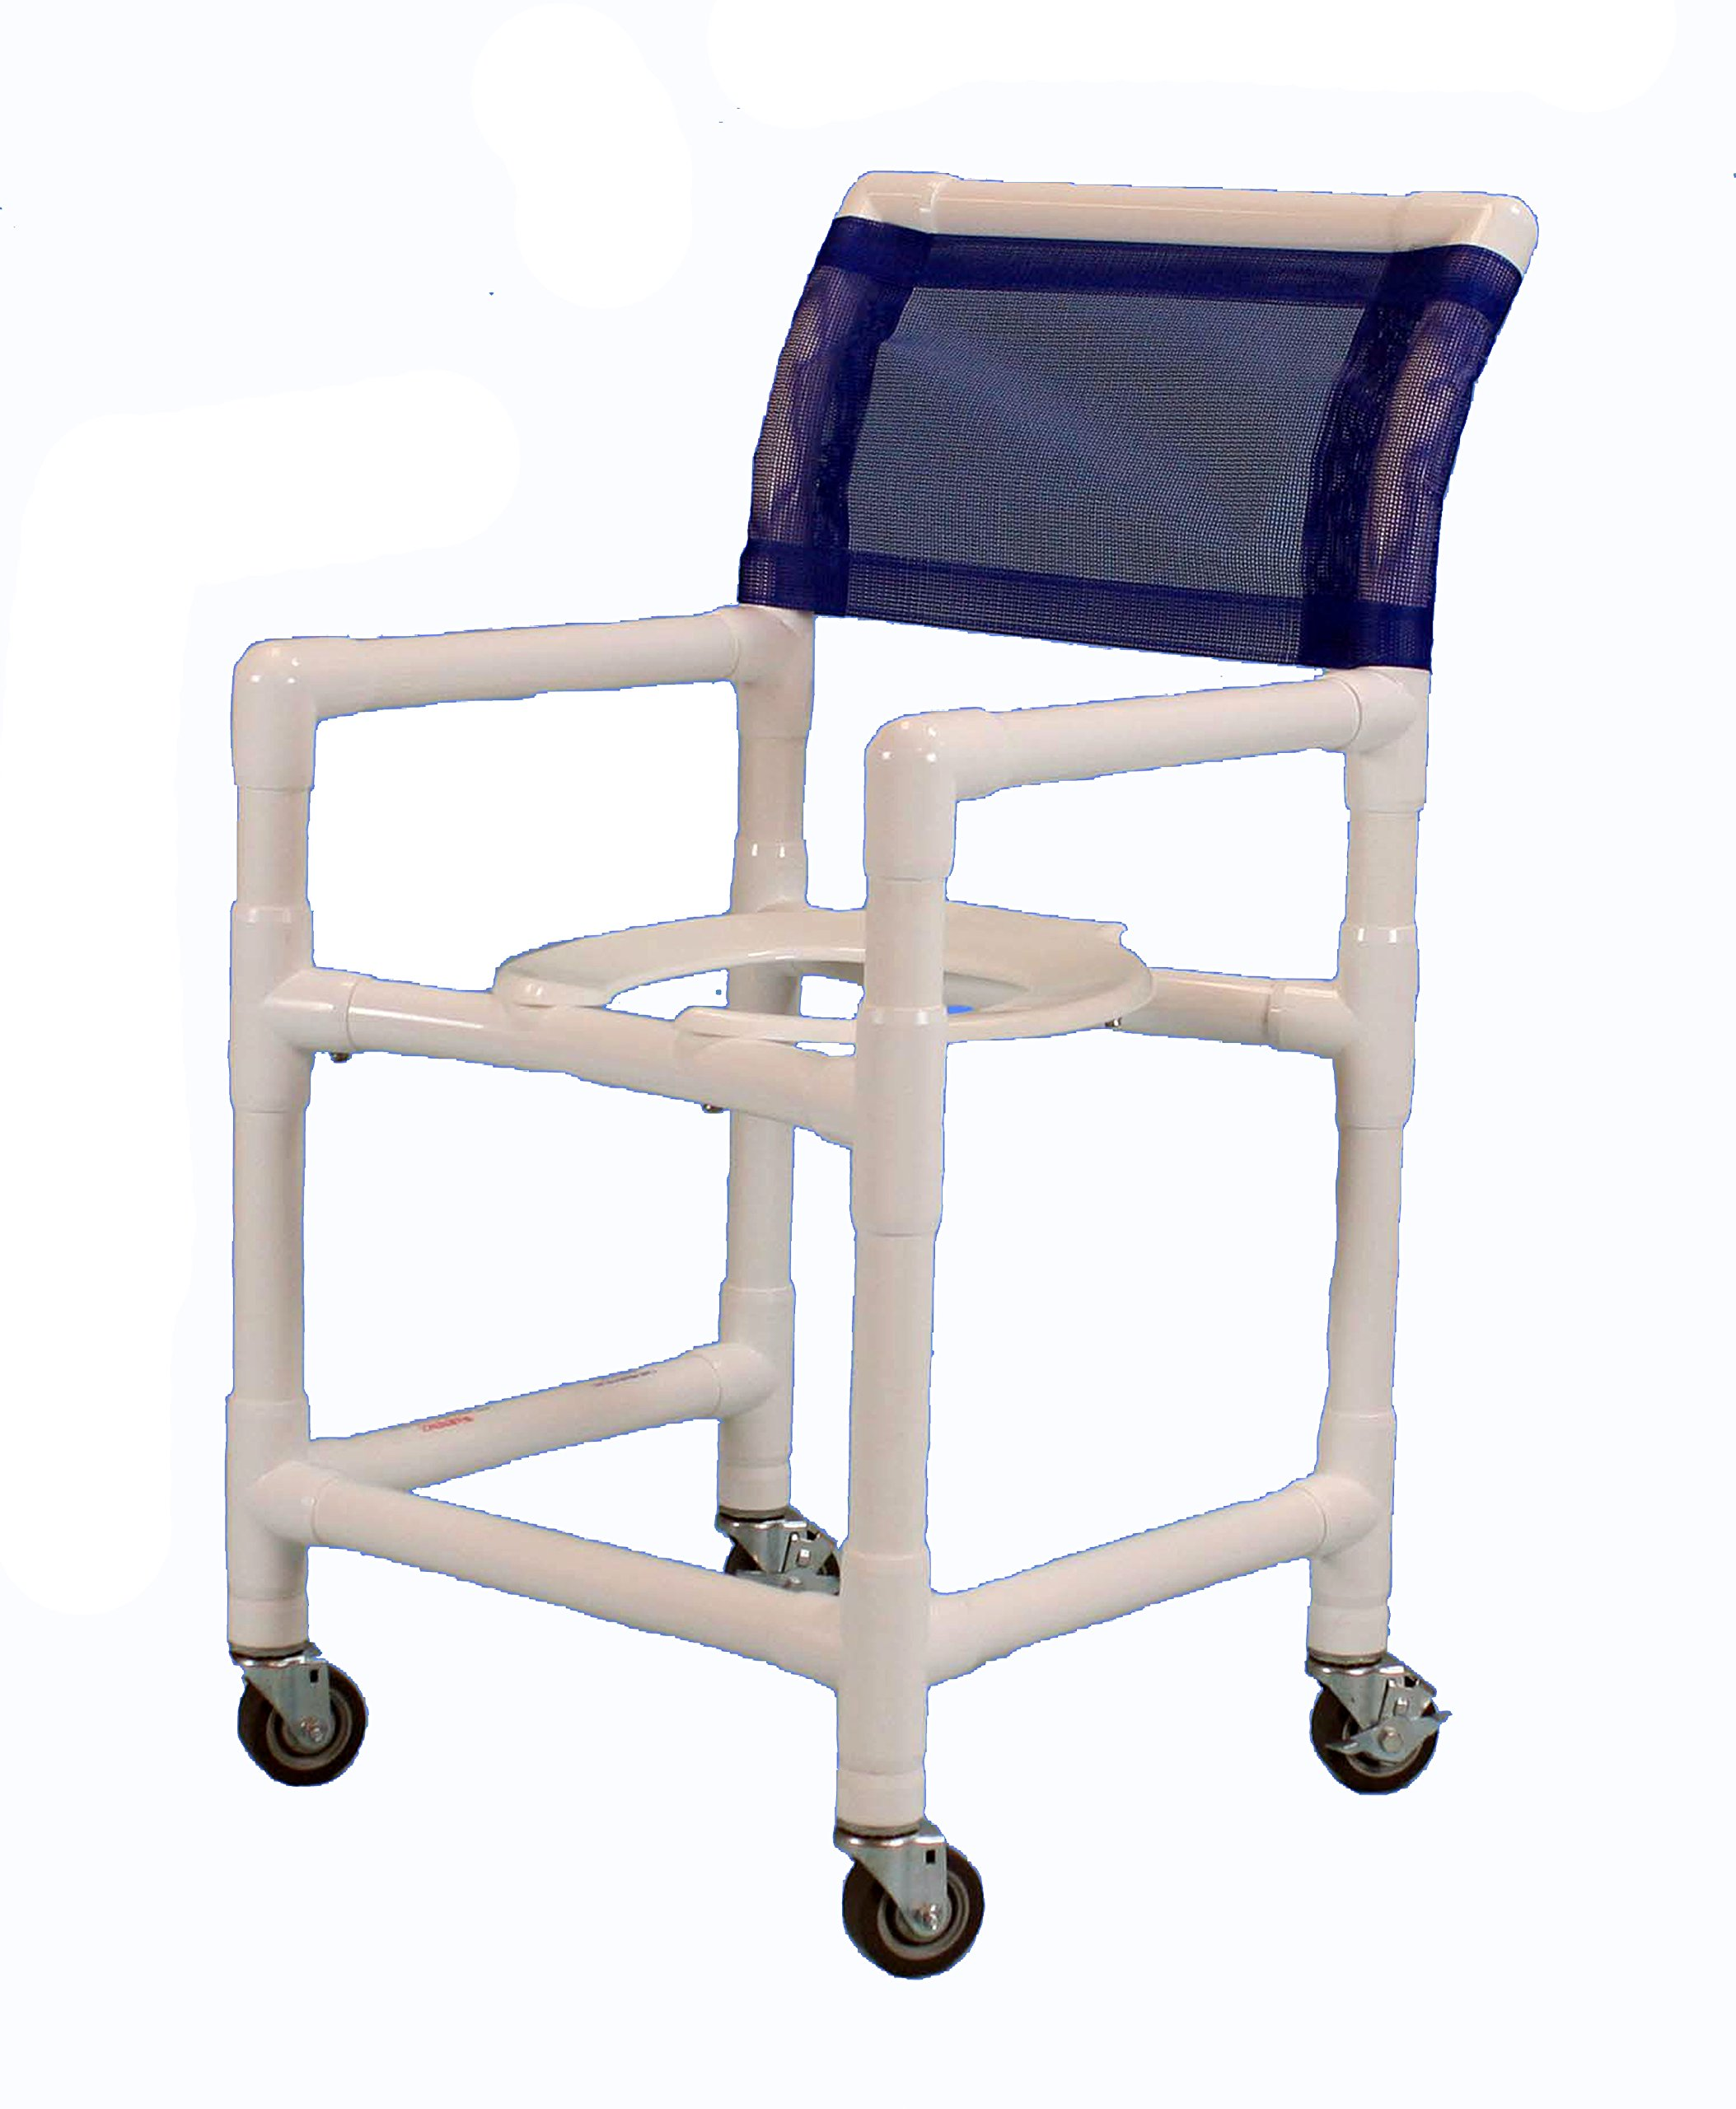 Care Products 550ESL-RB Standard Shower Chair with Slanted Seat, 3'' SX Casters, 38'' Height, 18'' width, 21'' Length